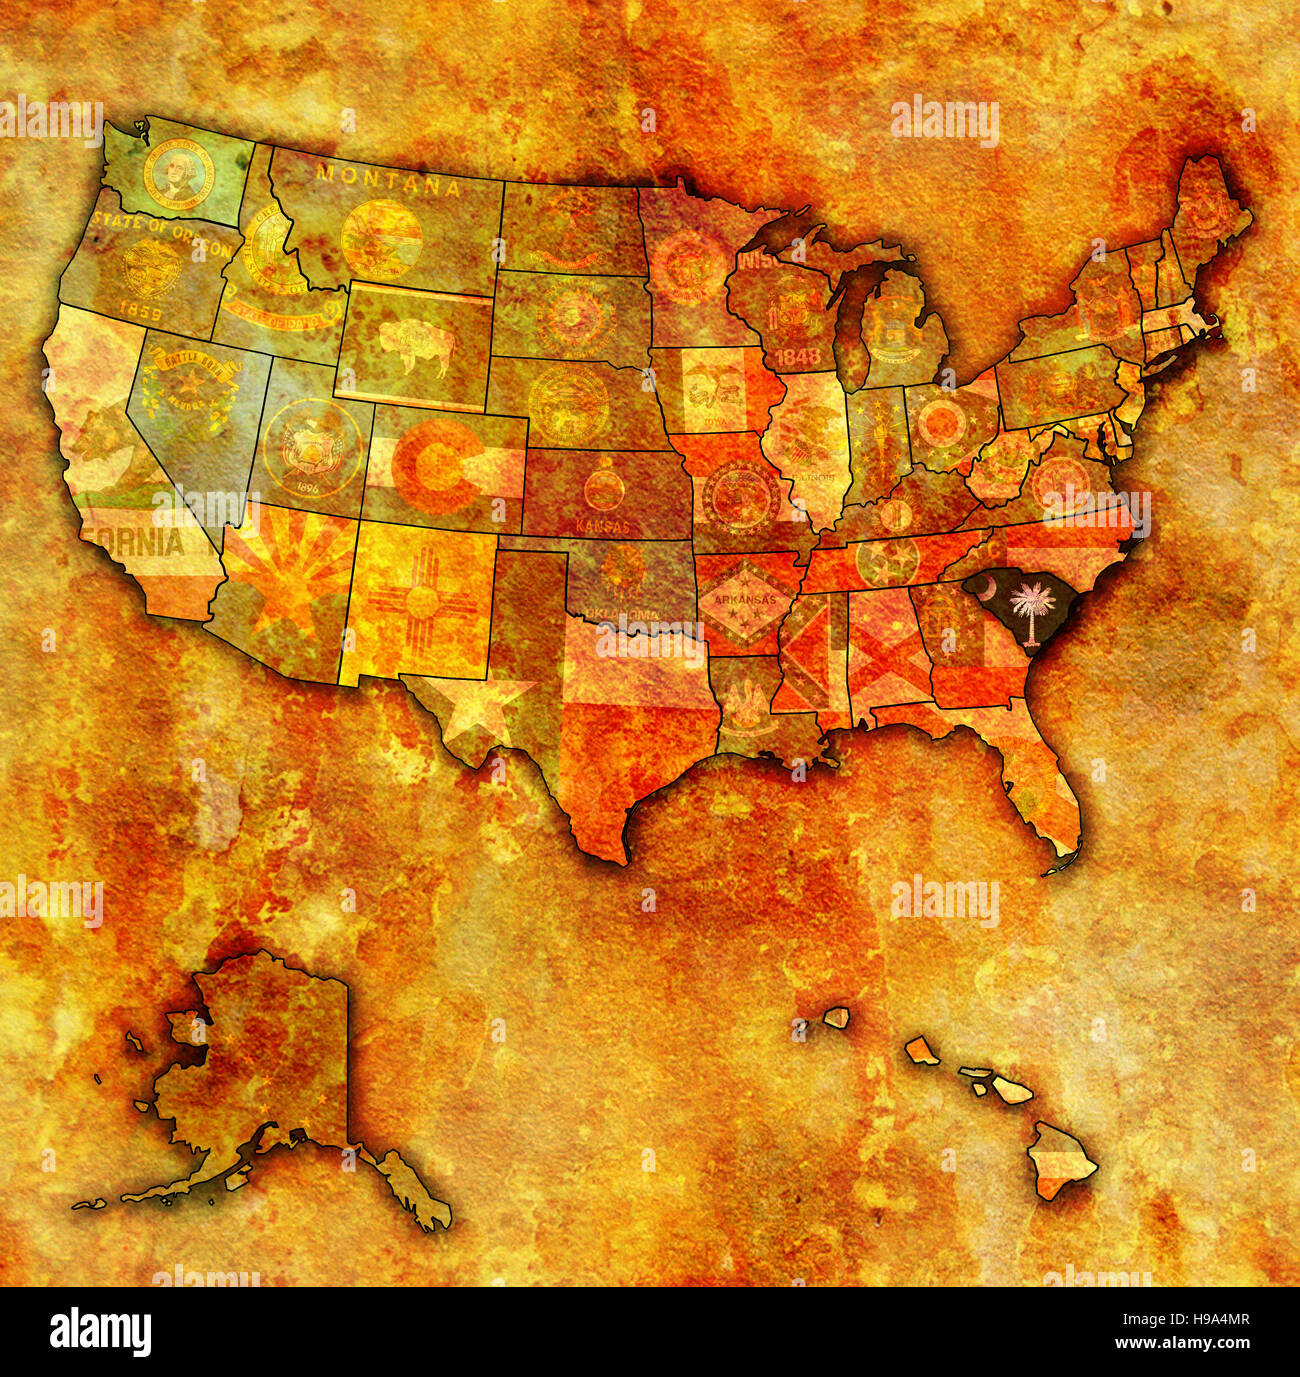 south carolina on old vintage map of usa with state borders Stock